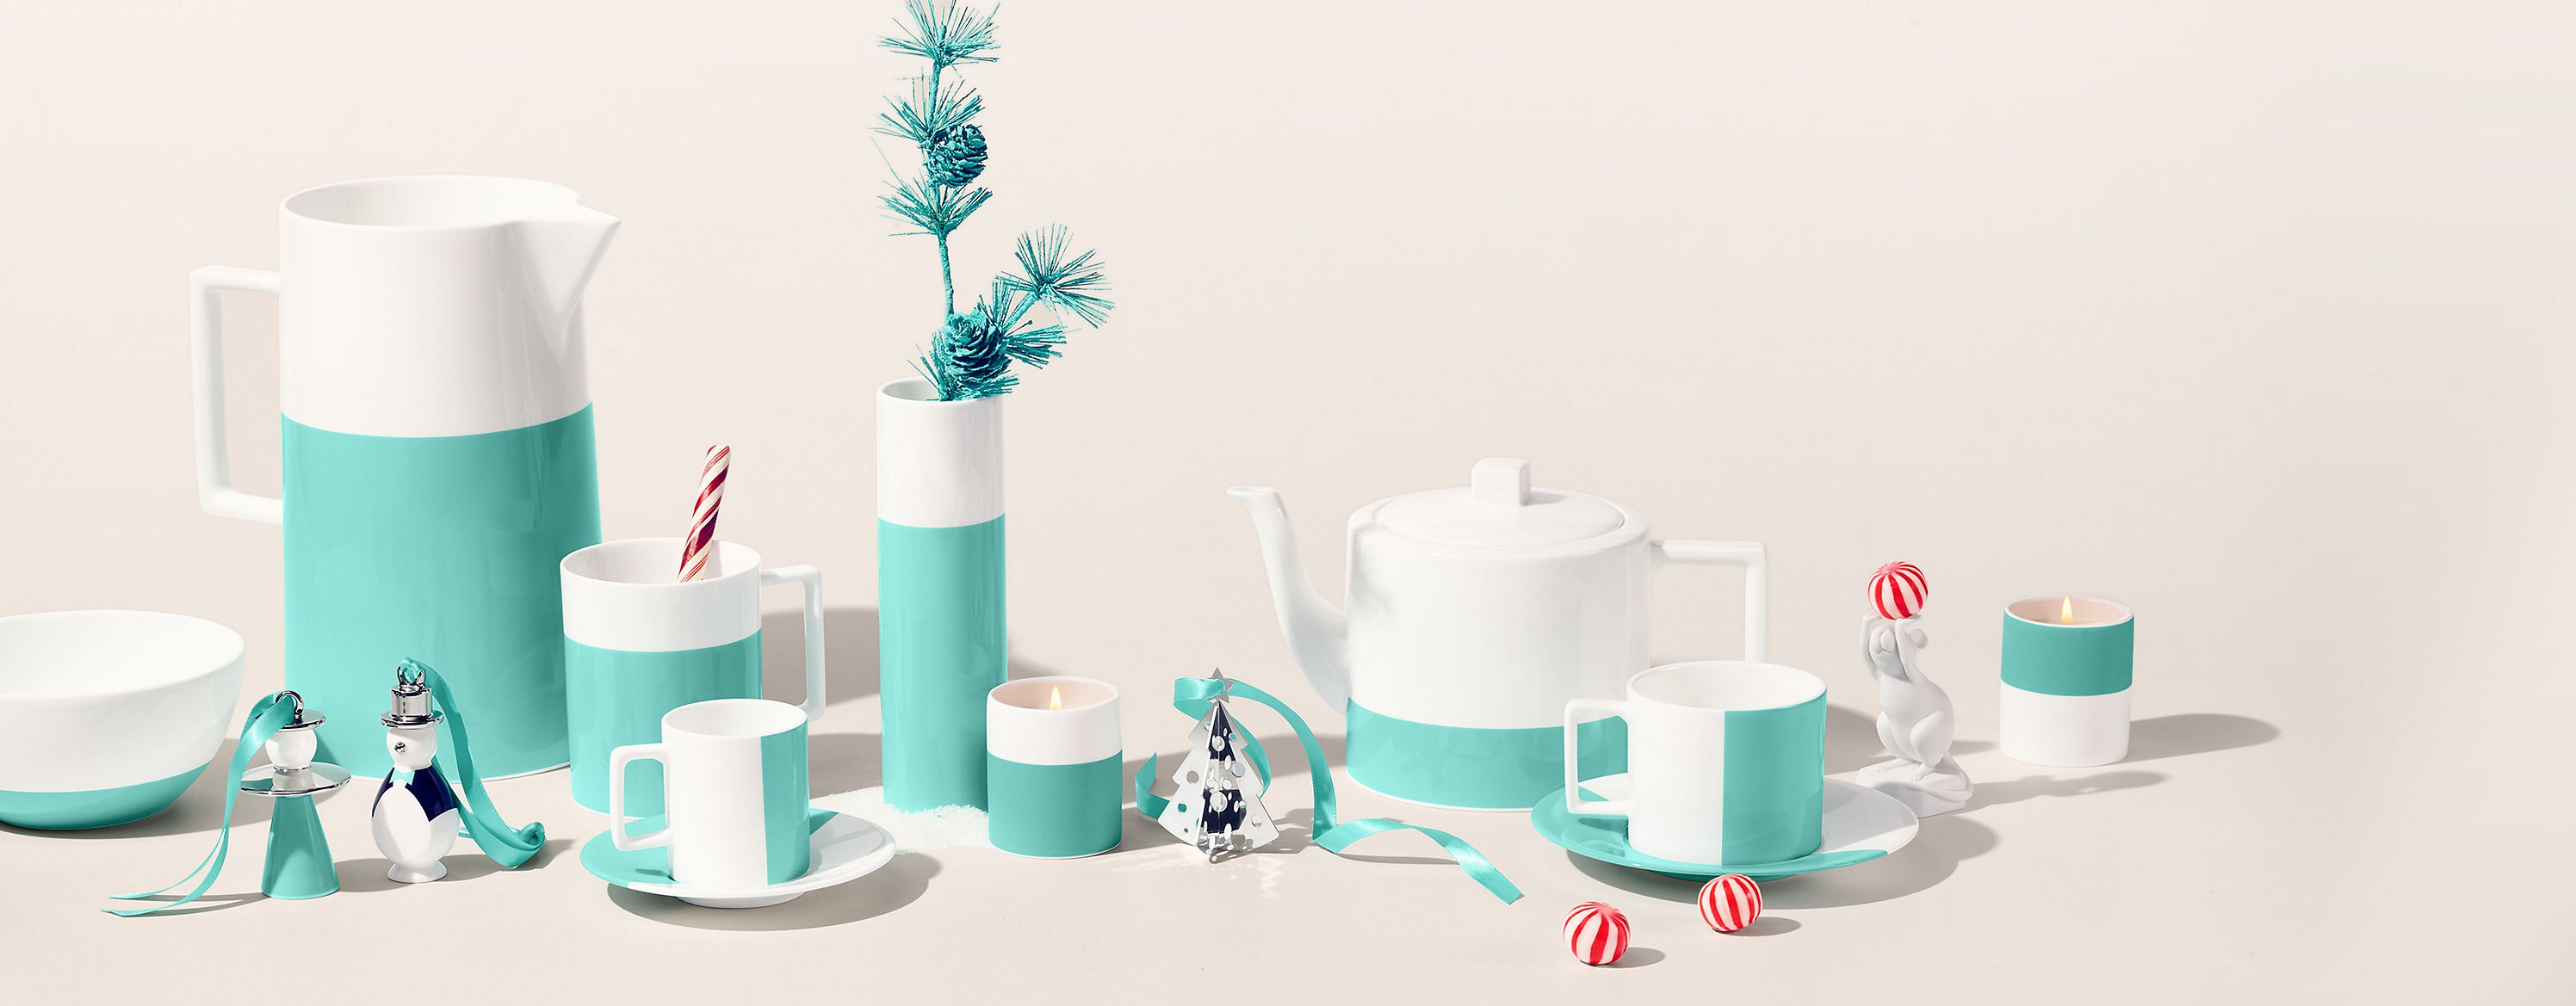 Browse Tiffany & Co. Gifts for the Home